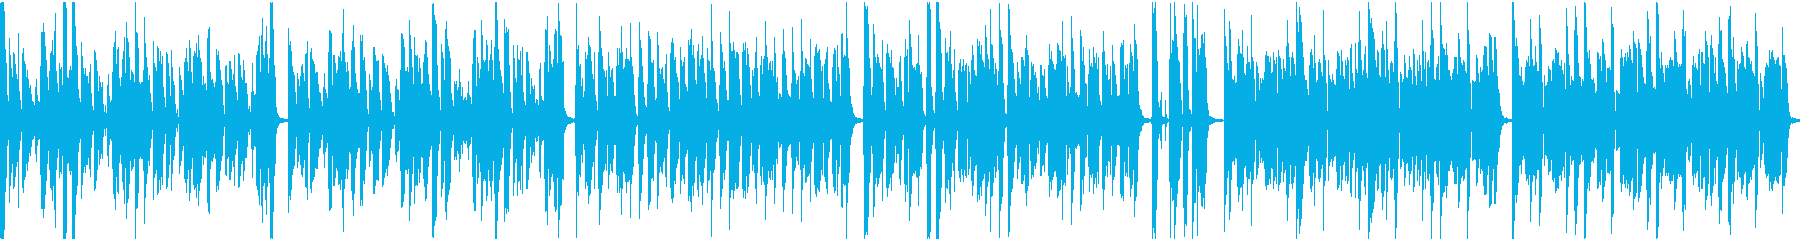 Fashionable ikeike / quiet karaoke / loop's reproduced waveform